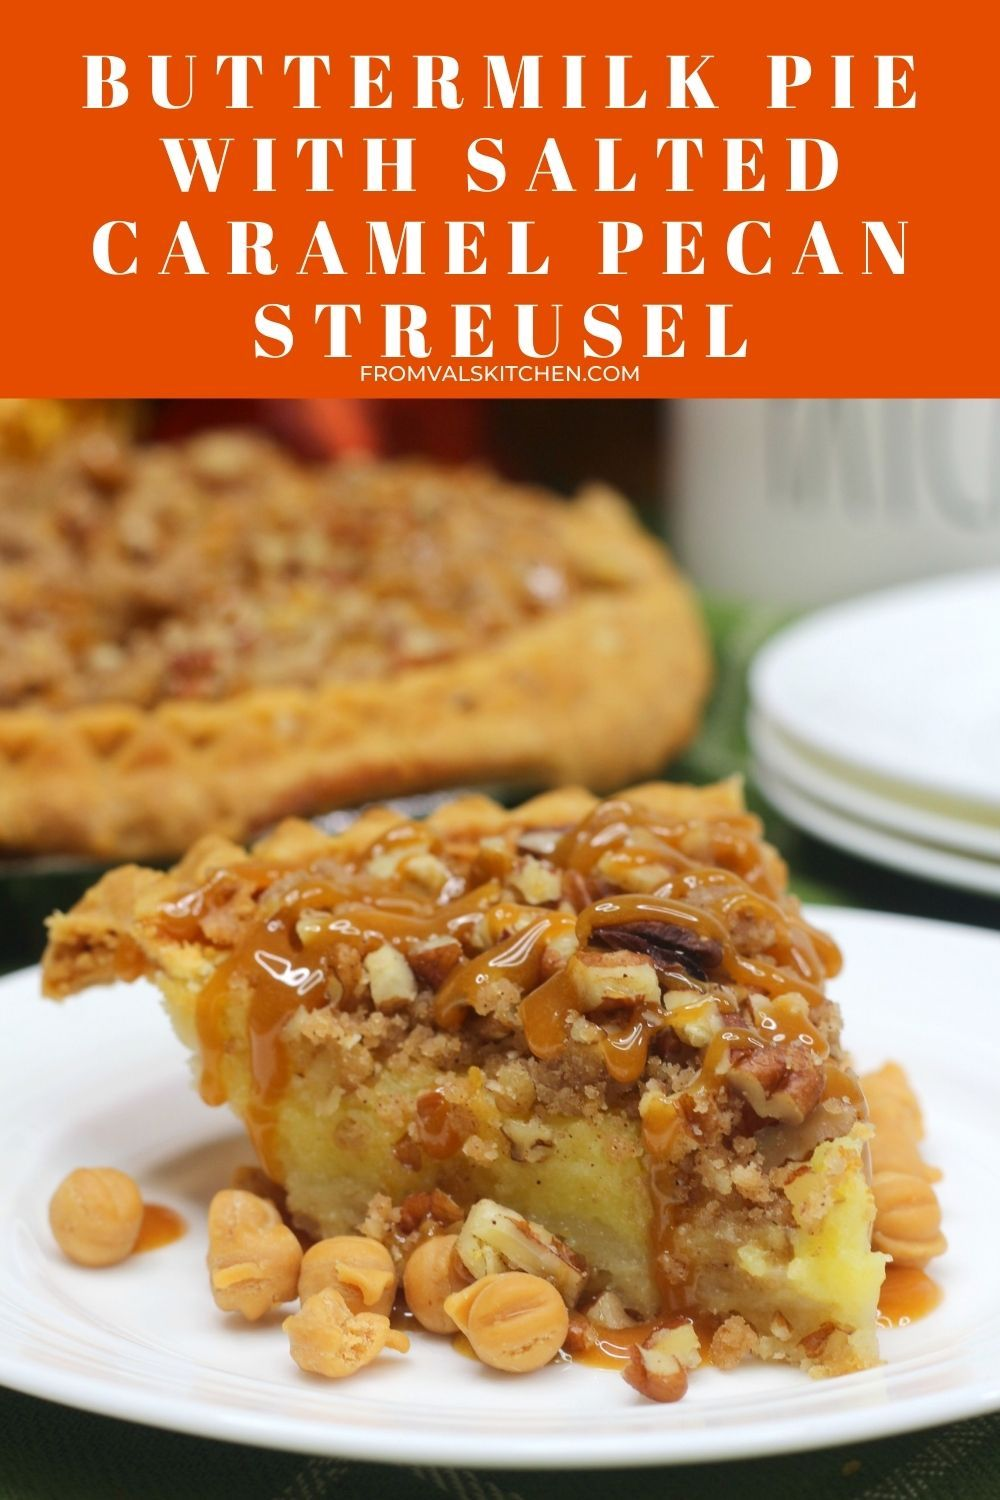 Buttermilk Pie With Salted Caramel Pecan Streusel Recipe From Val's Kitchen